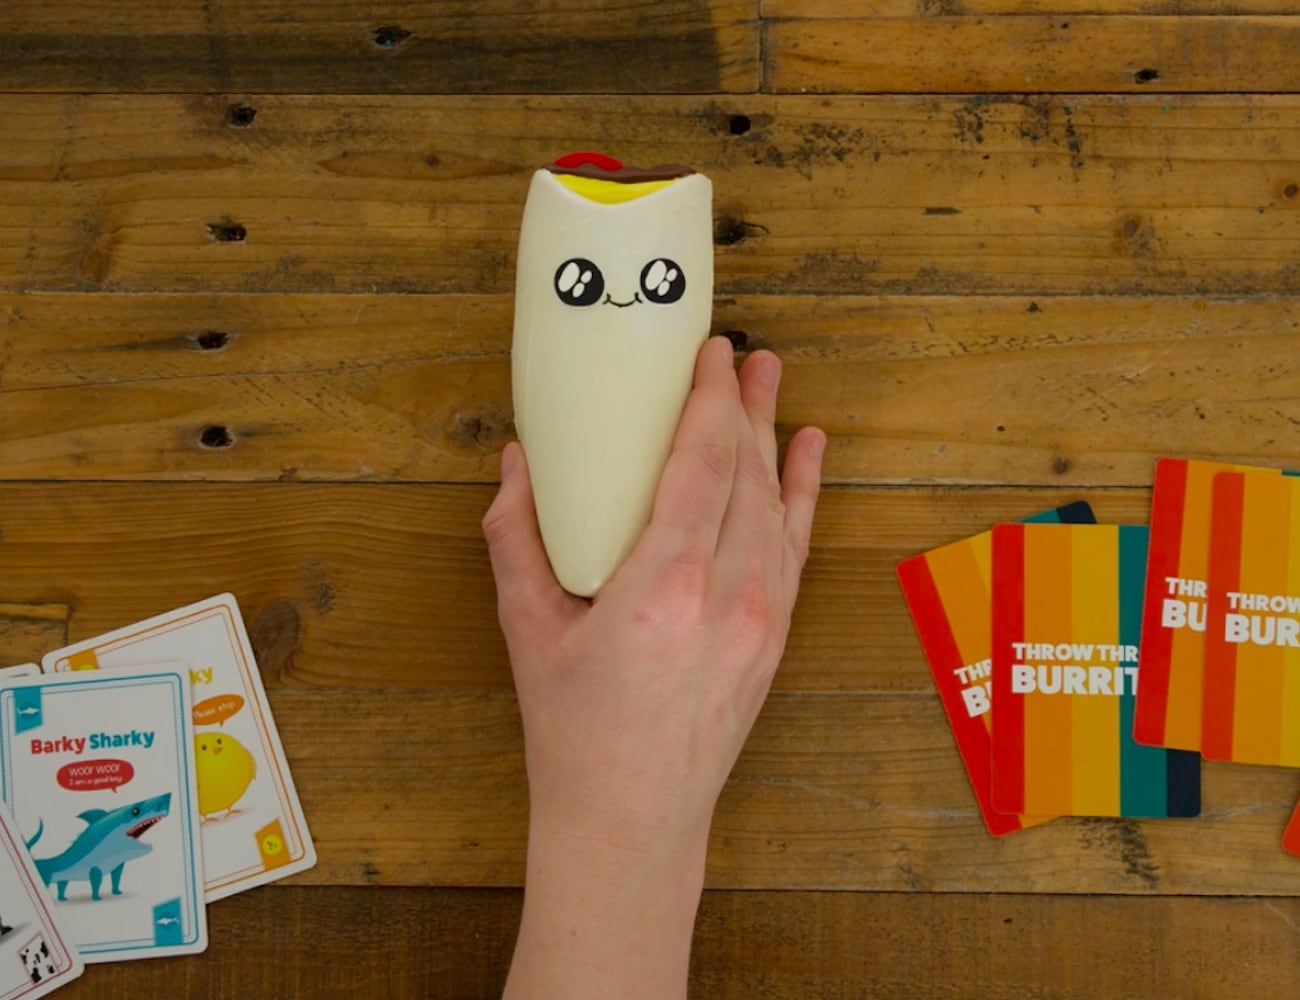 Throw Throw Burrito Dodgeball Card Game involves throwing stuff at your opponents